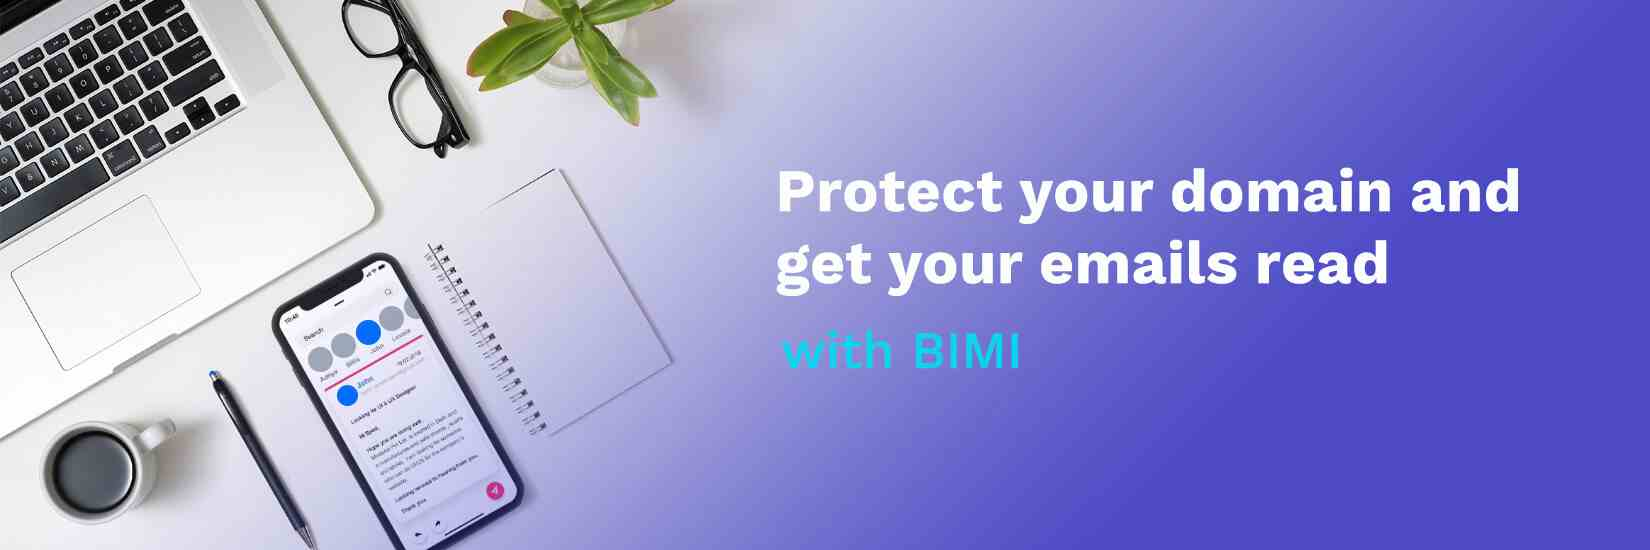 How to Strengthen Your Brand with BIMI